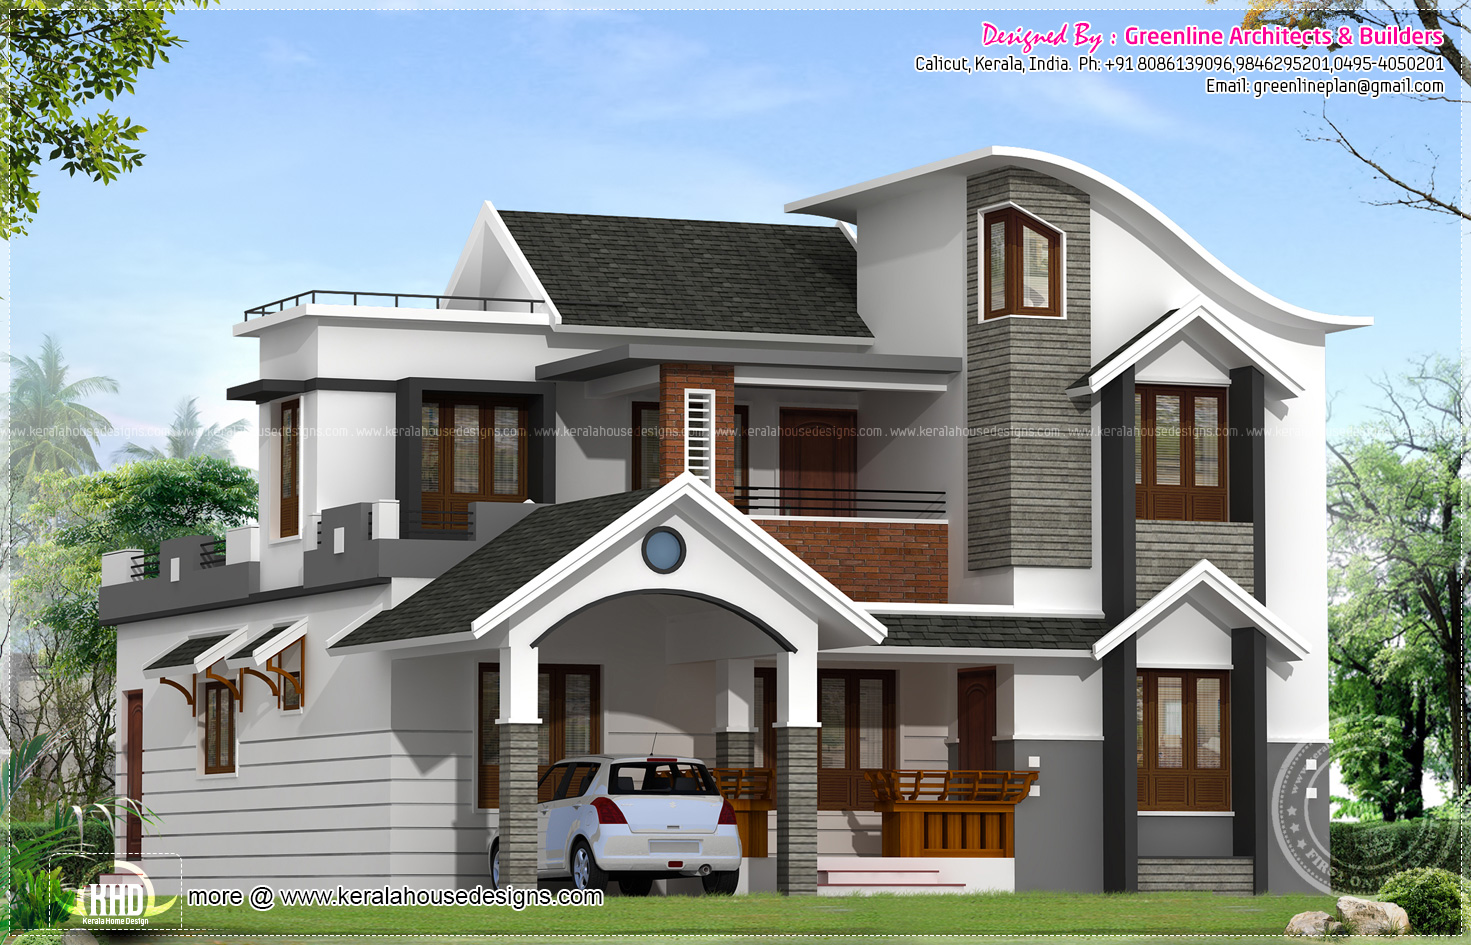 Modern house architecture in kerala kerala home design for Kerala contemporary home designs